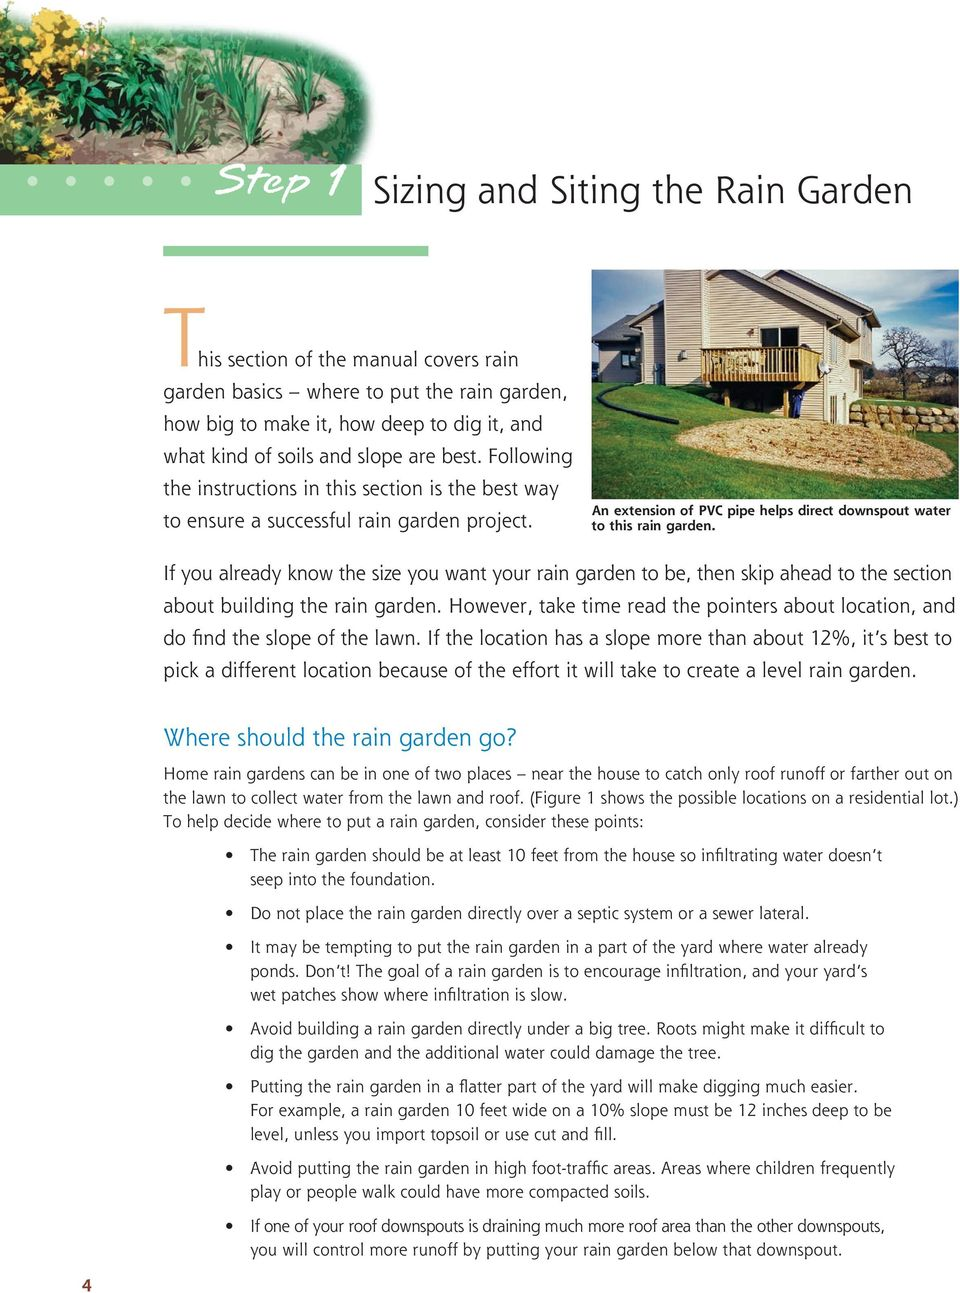 If you already know the size you want your rain garden to be, then skip ahead to the section about building the rain garden.